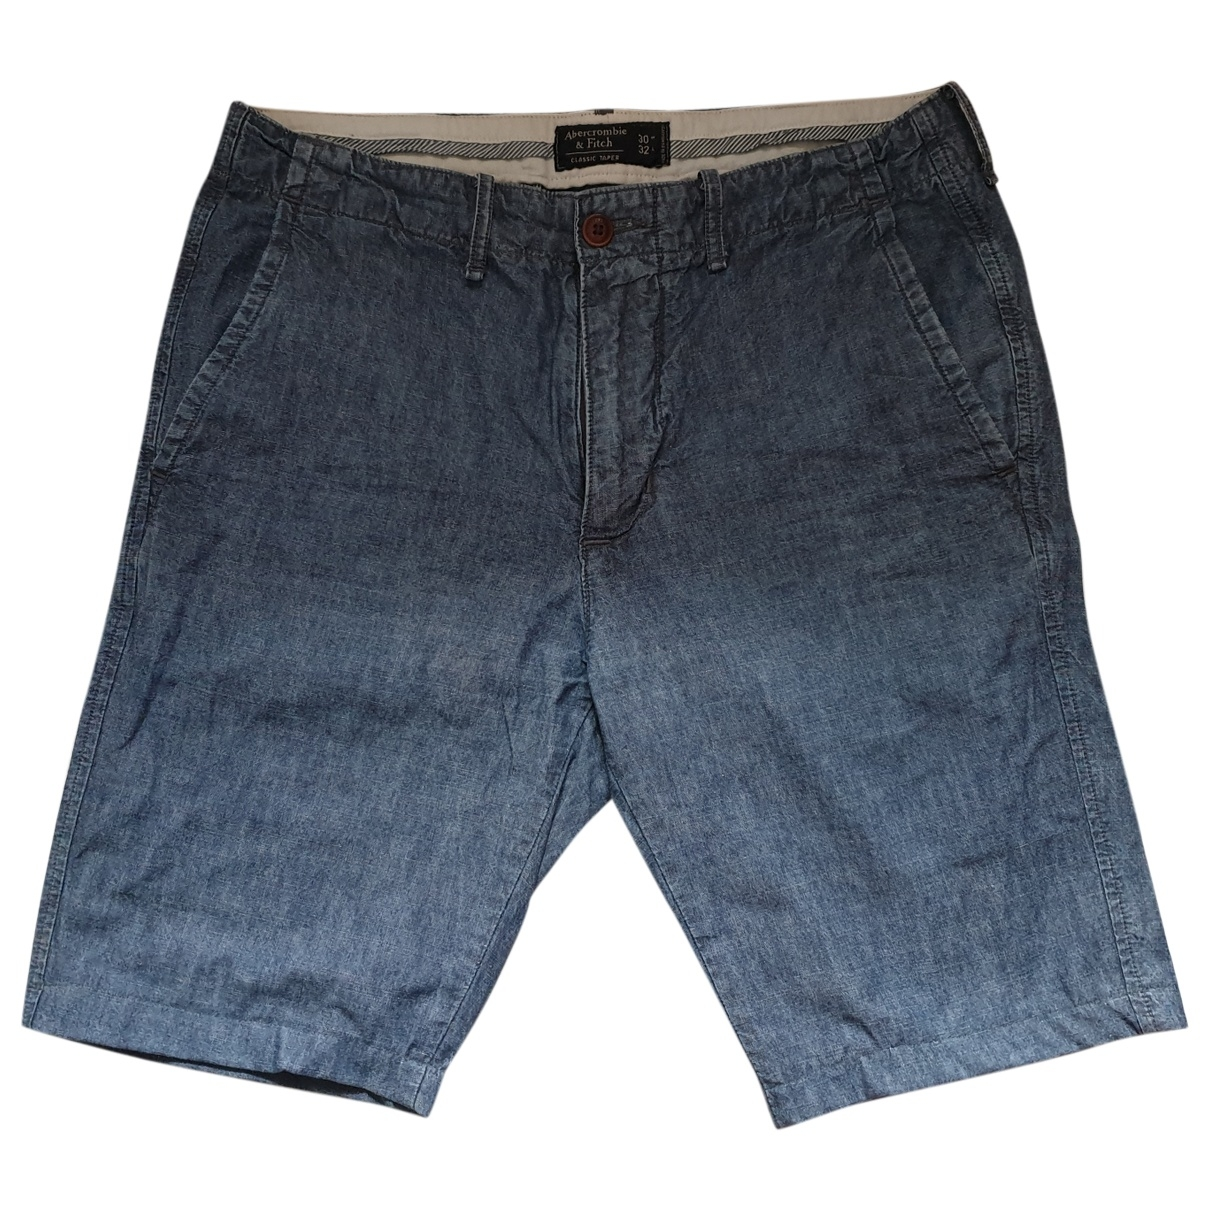 Abercrombie & Fitch \N Blue Cotton Shorts for Women L International